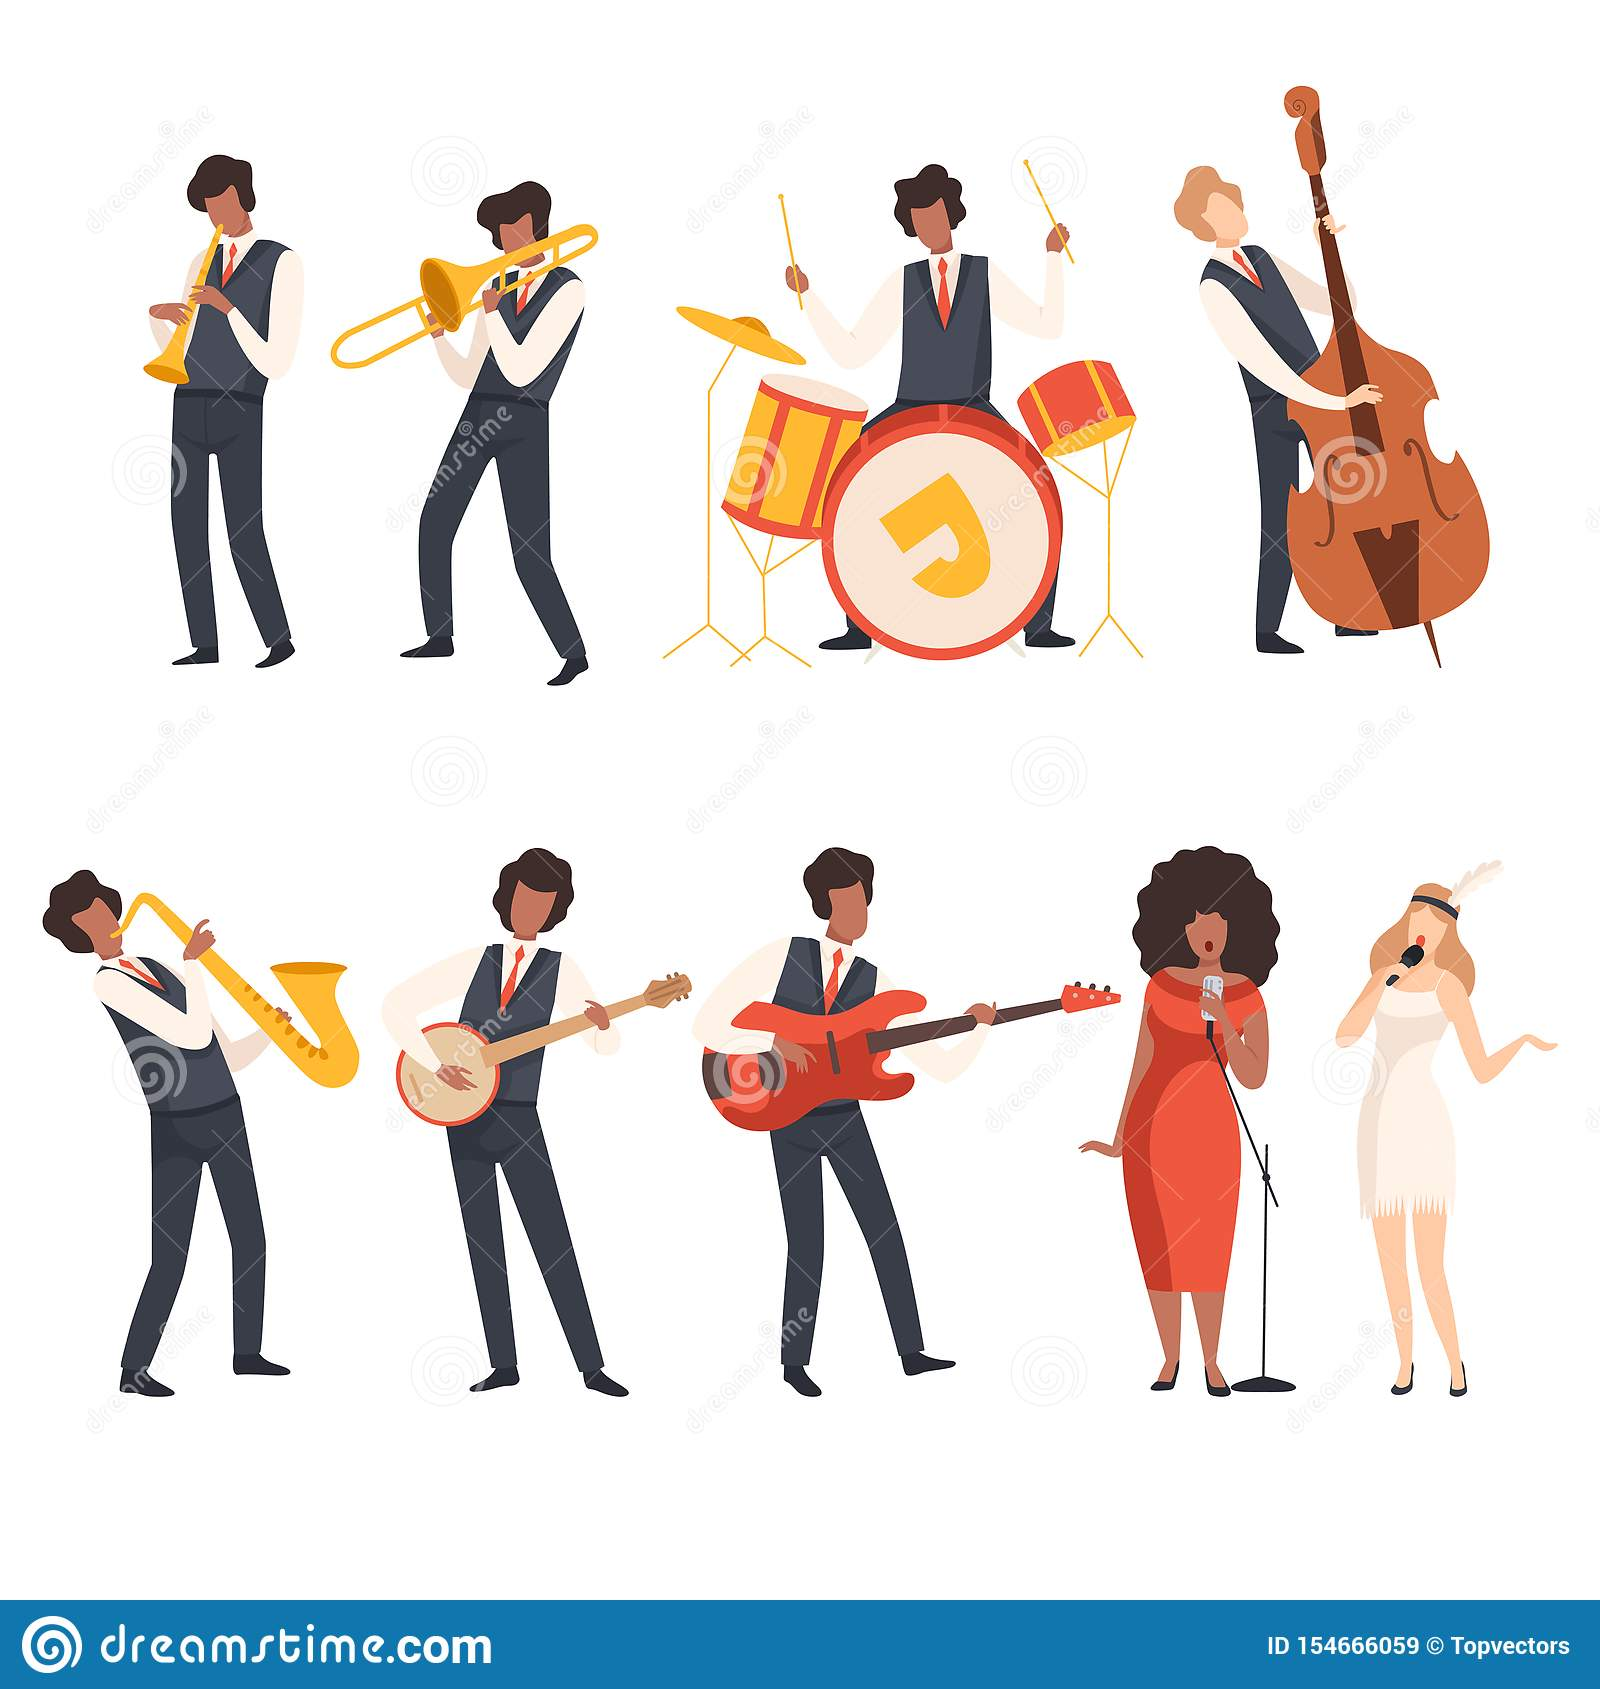 Jazz Band Group, Musicians Singing and Playing Trumpet, Banjo, Saxophone, Trombone, Drums, Guitar, Double Bass, Vector